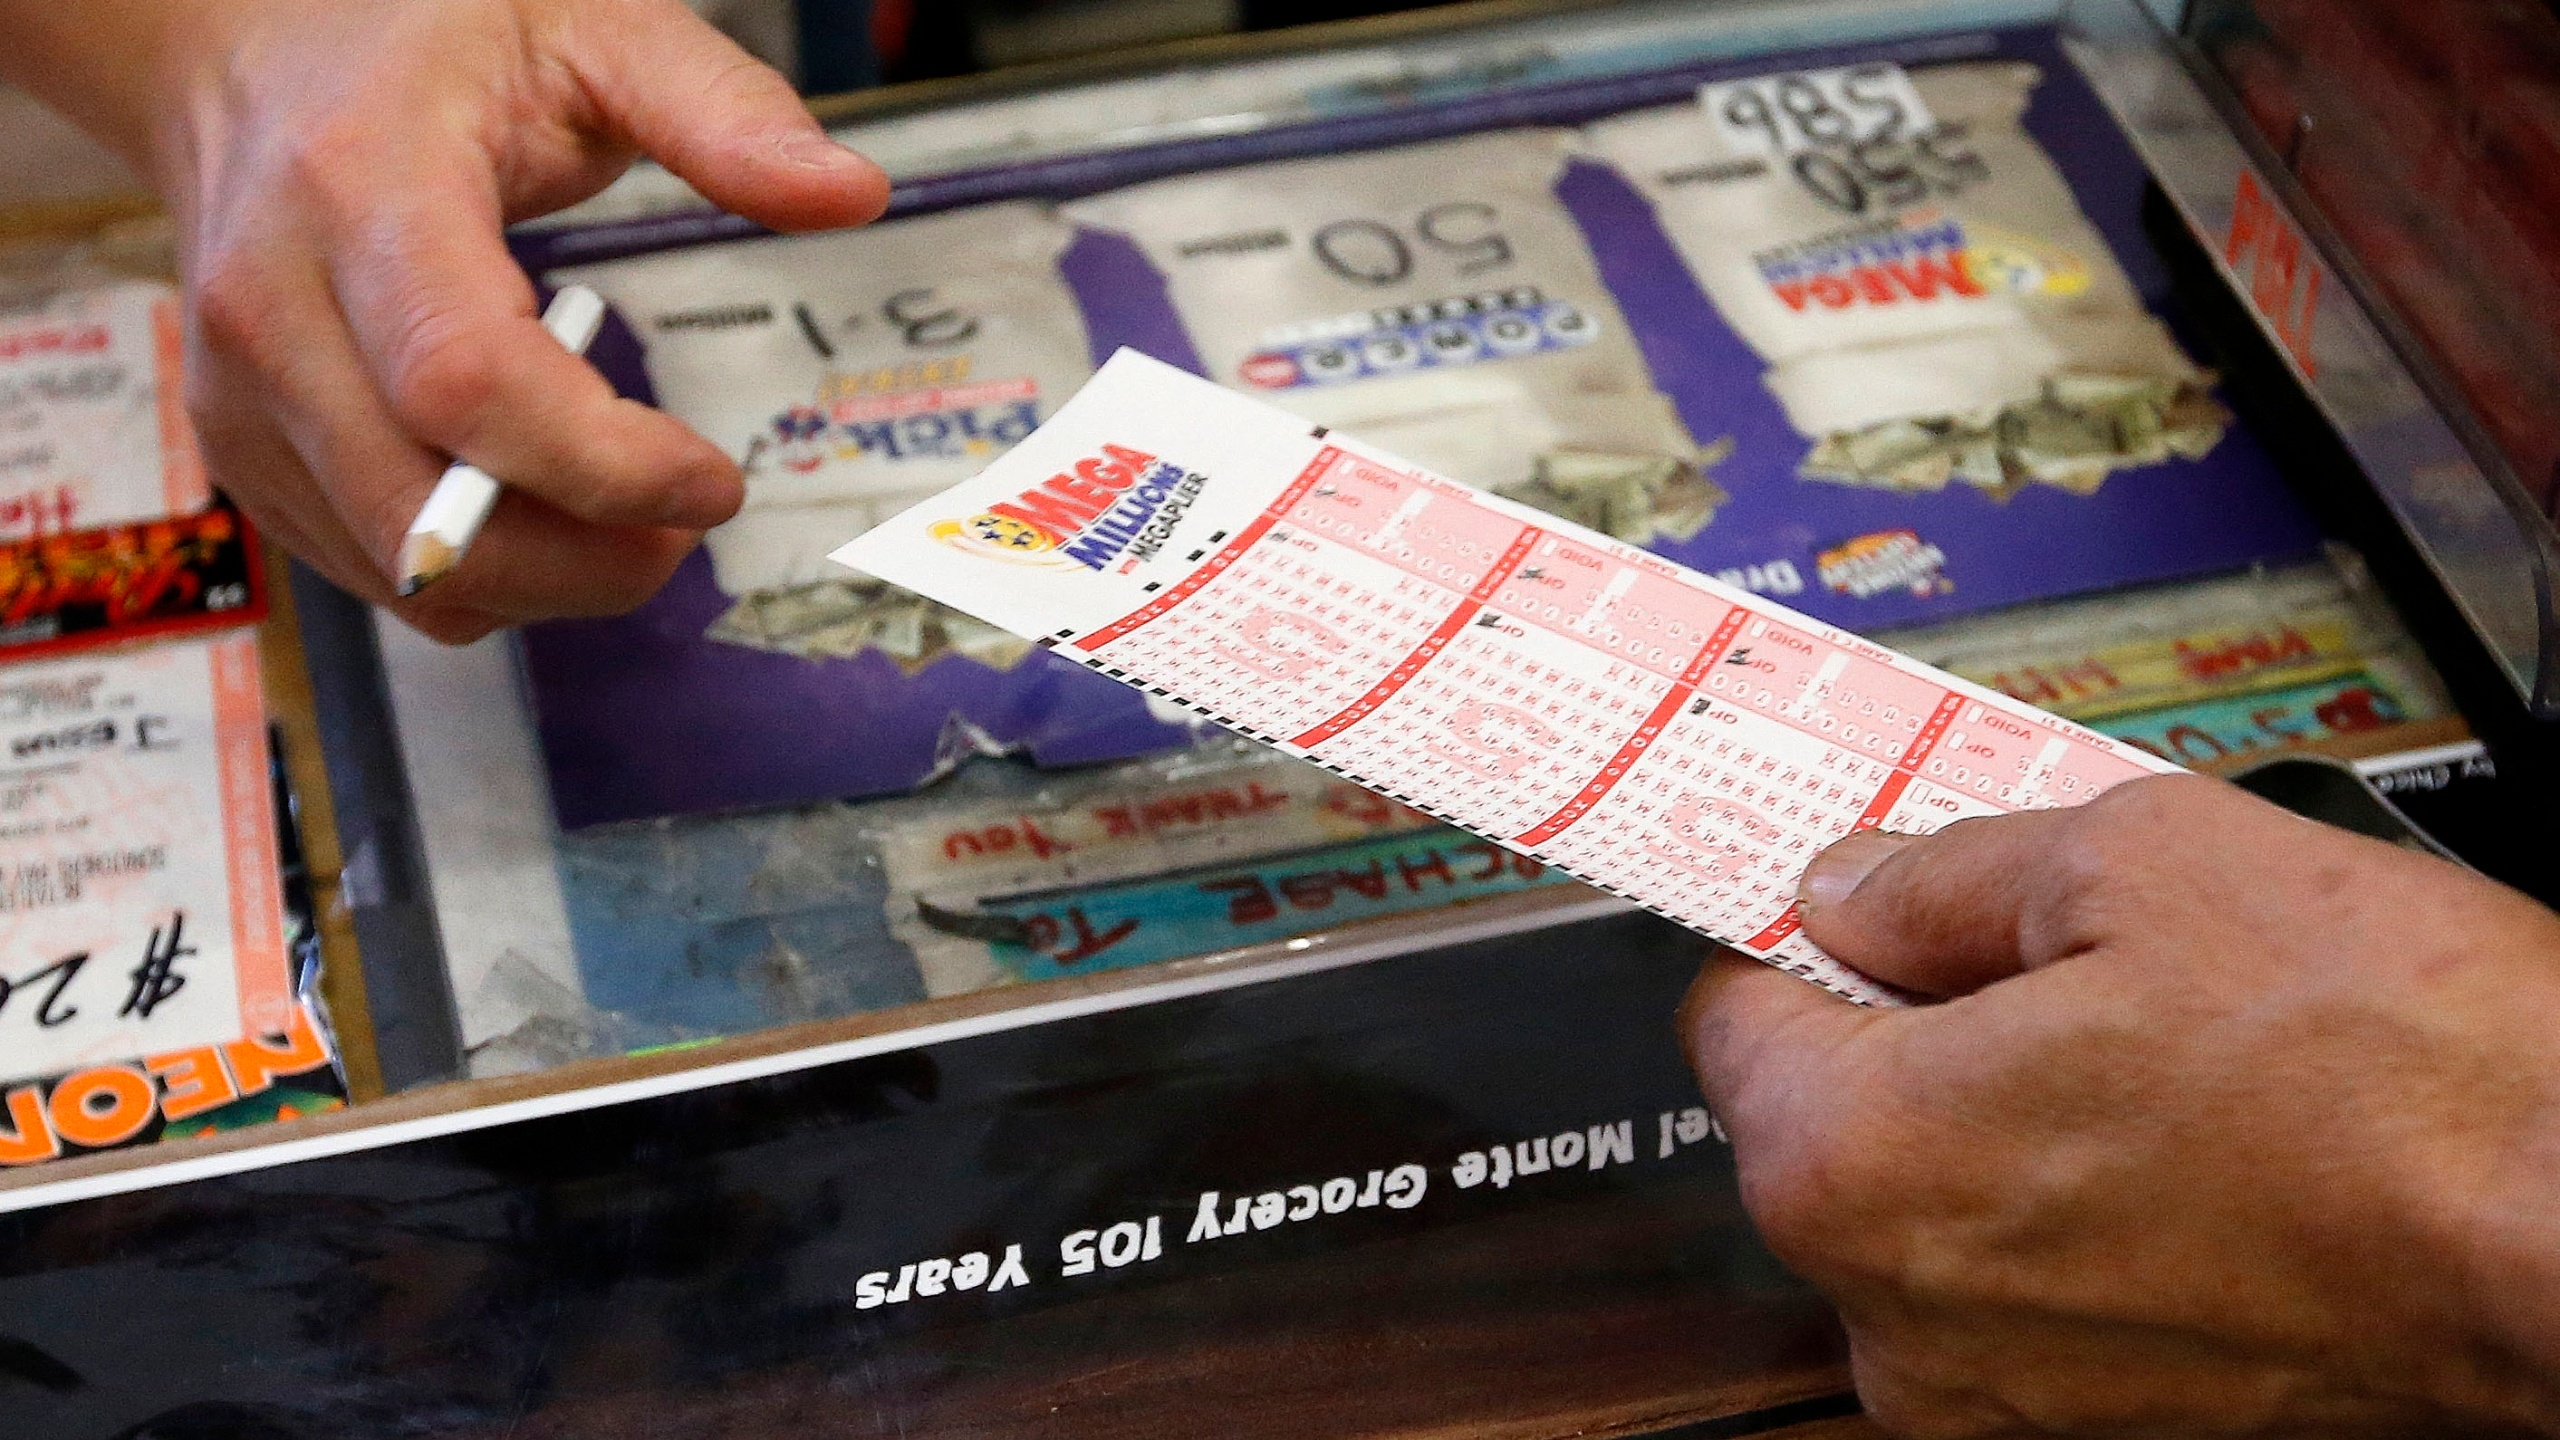 Lottery_Staying_Anonymous_93801-159532.jpg38934382